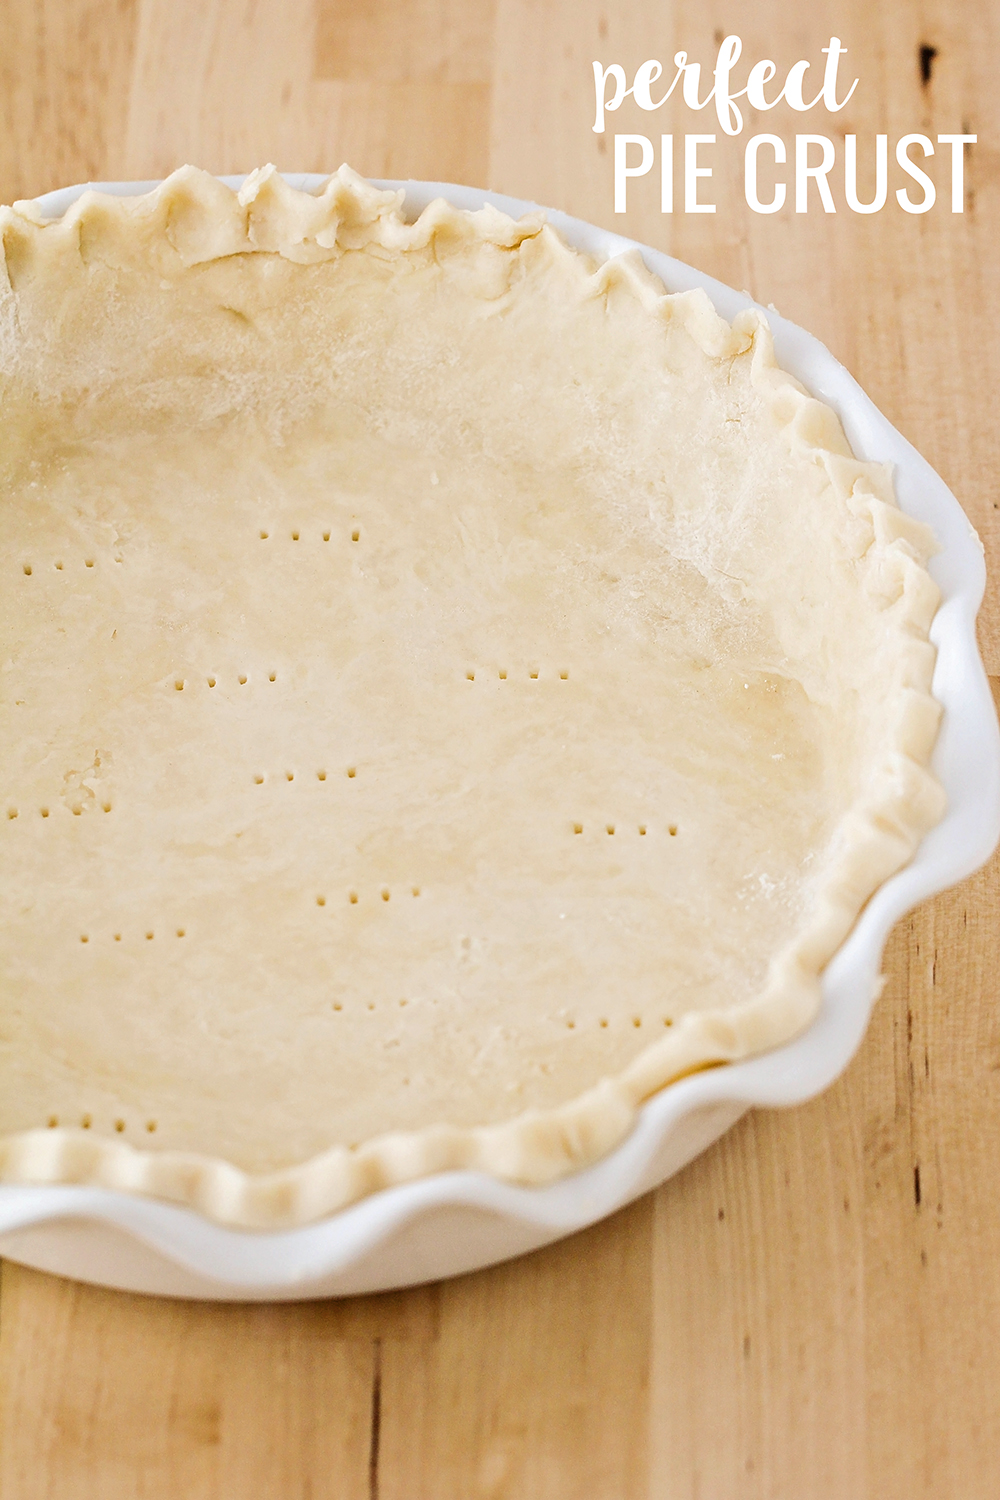 Homemade pie crust is simple, quick, and easy to make with this fantastic recipe!